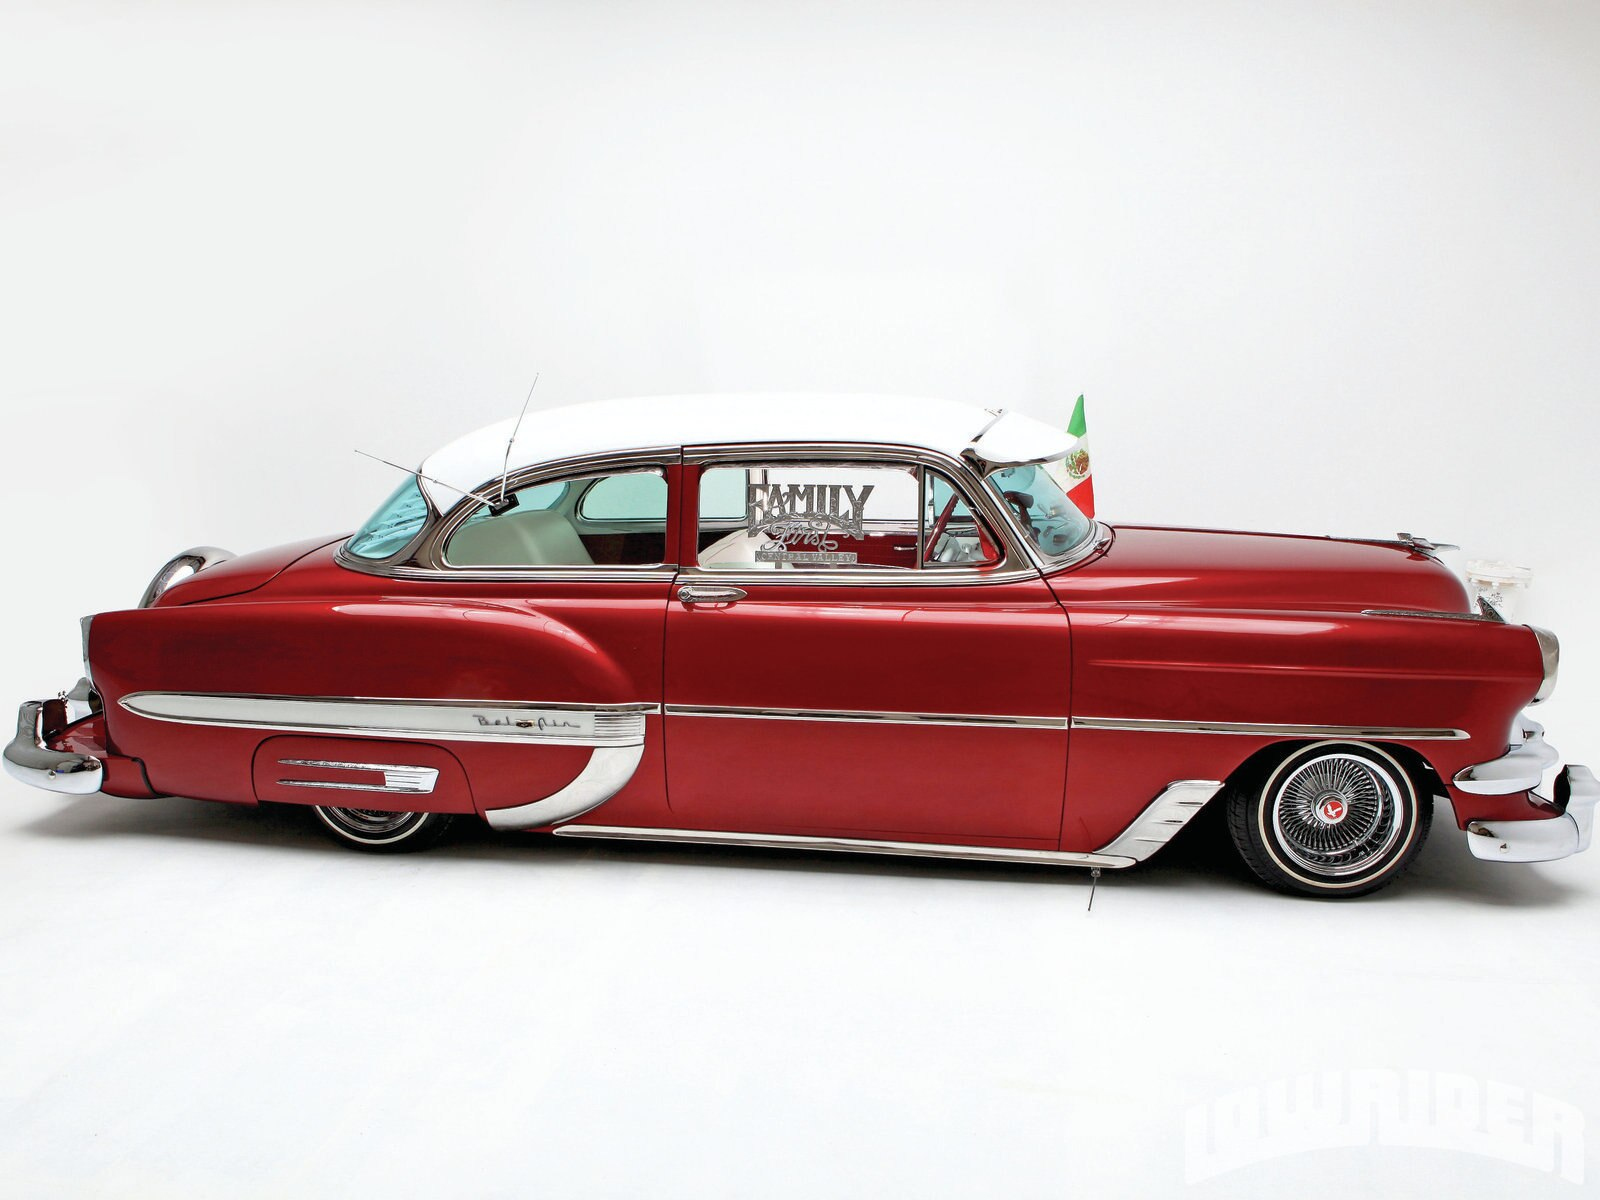 1201-lrmp-10-o-1954-chevrolet-bel-air-passenger-side-view1